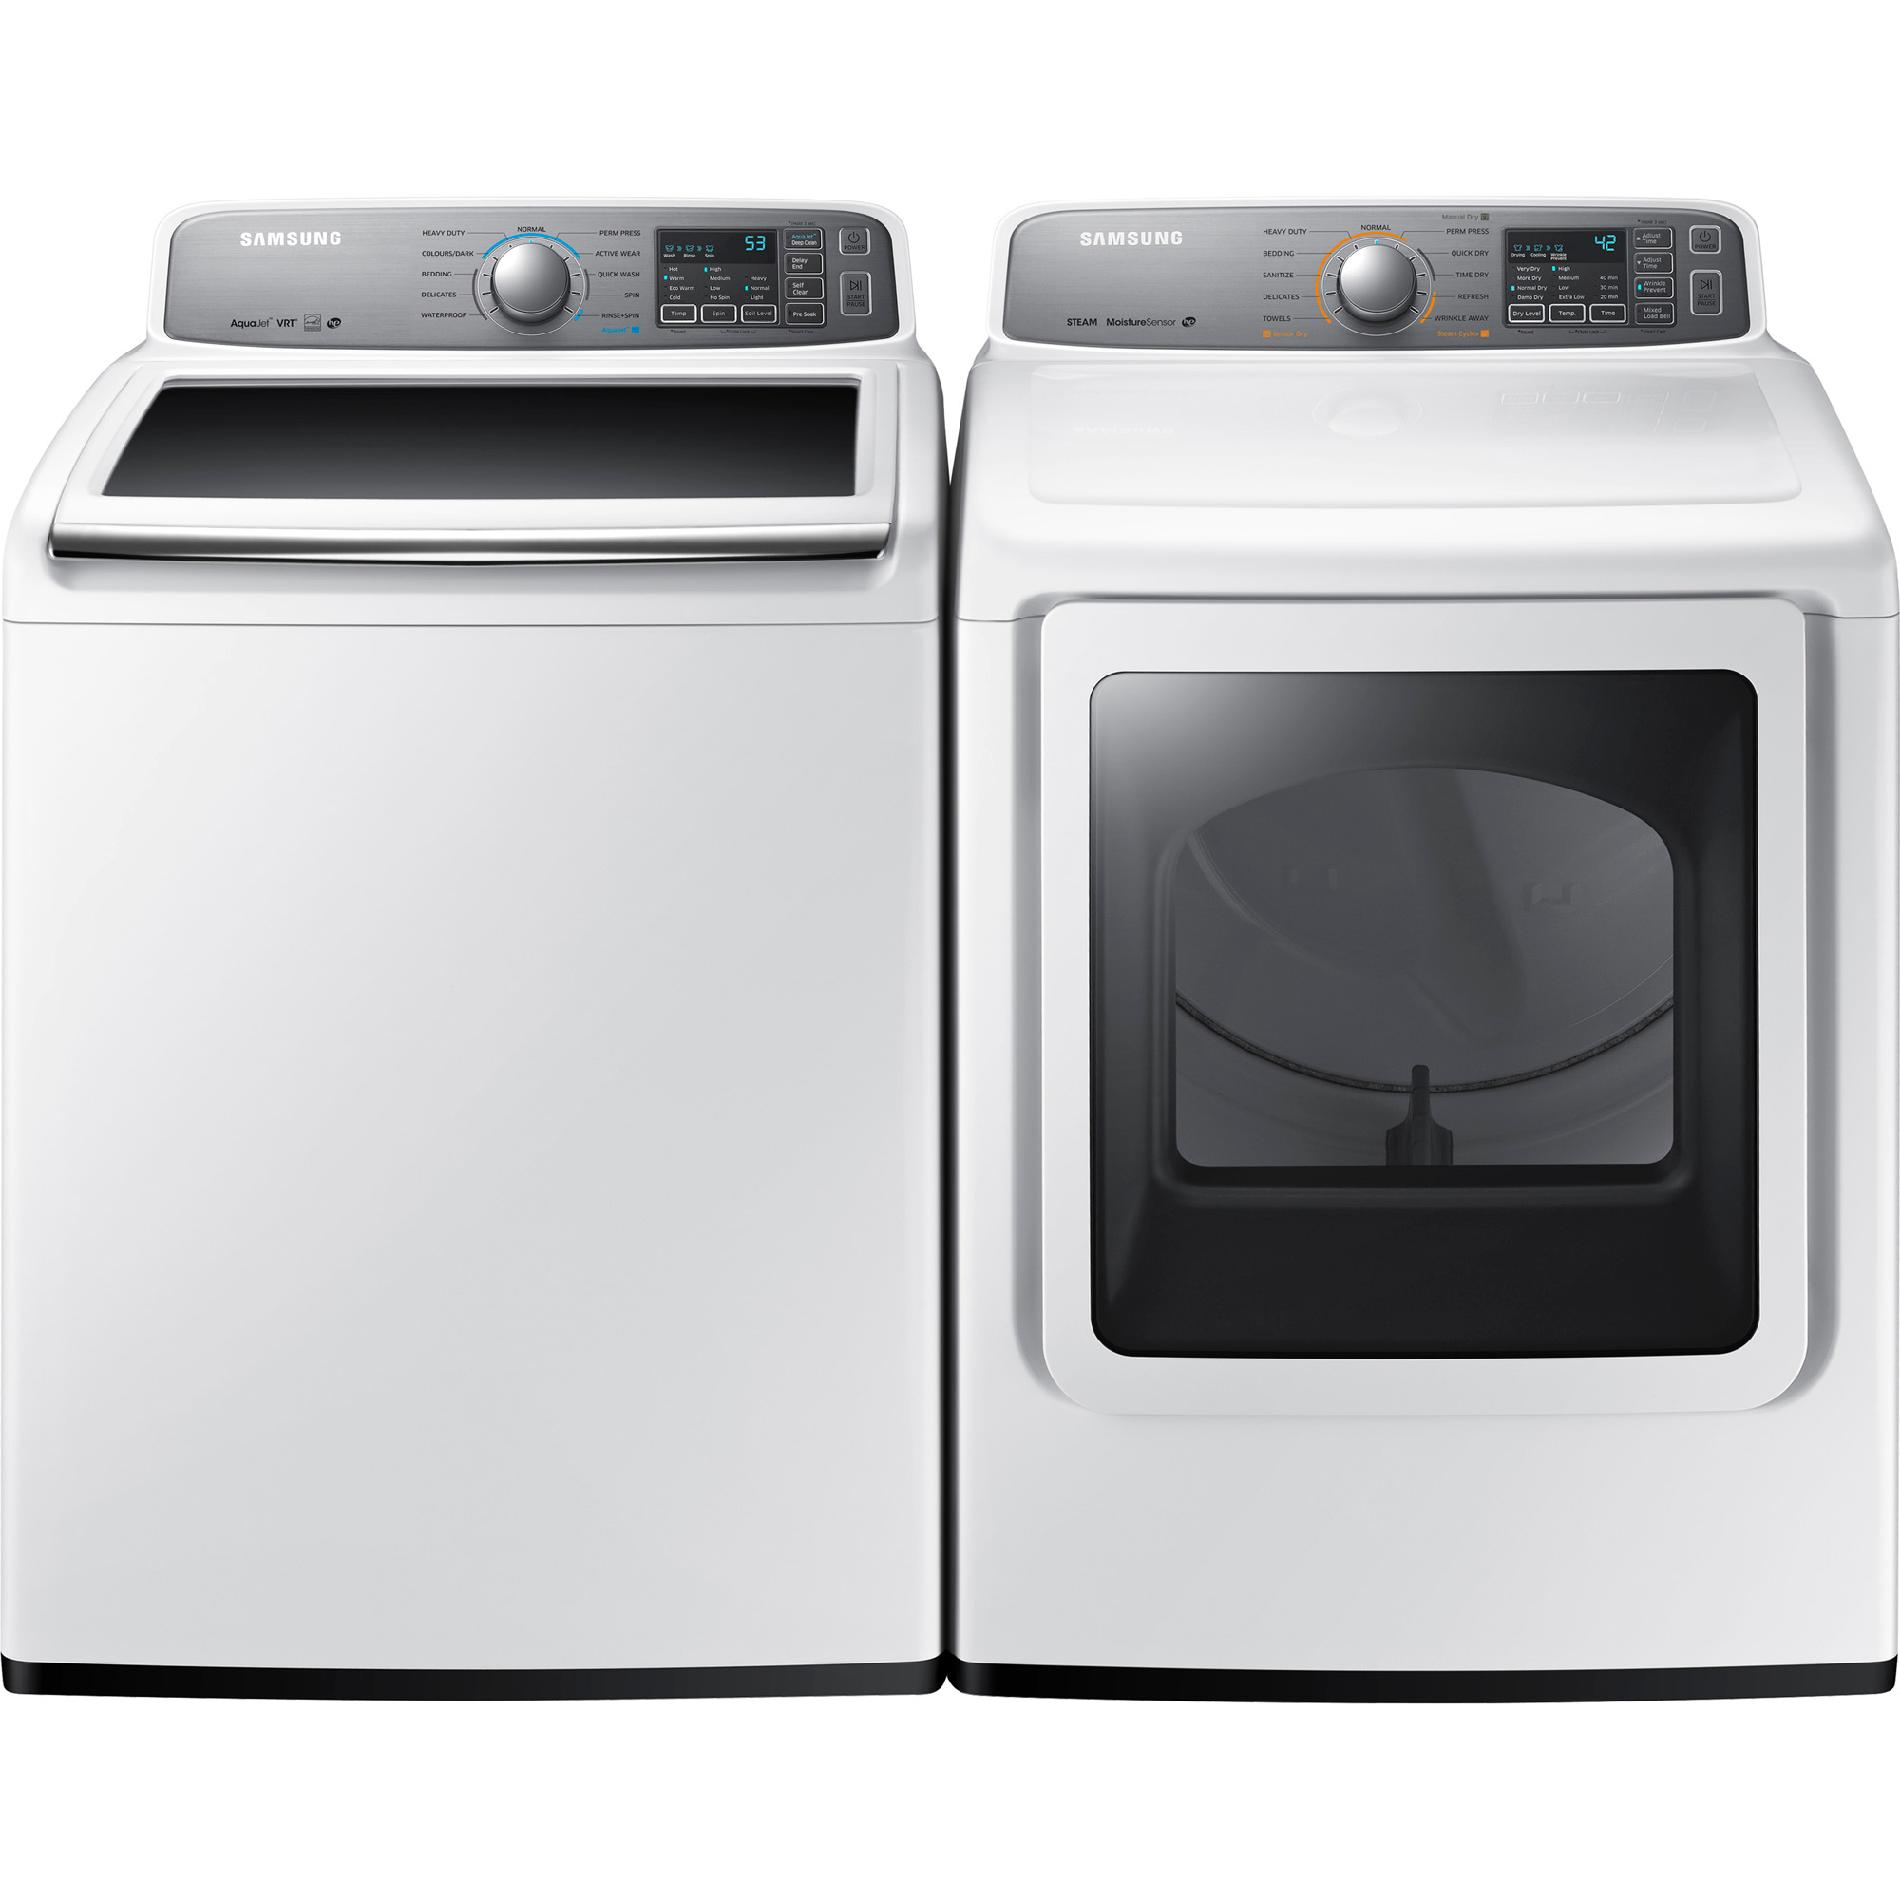 samsung wahaw cu ft top load washer white samsung wa48h7400aw 4 8 cu ft top load washer white sears outlet